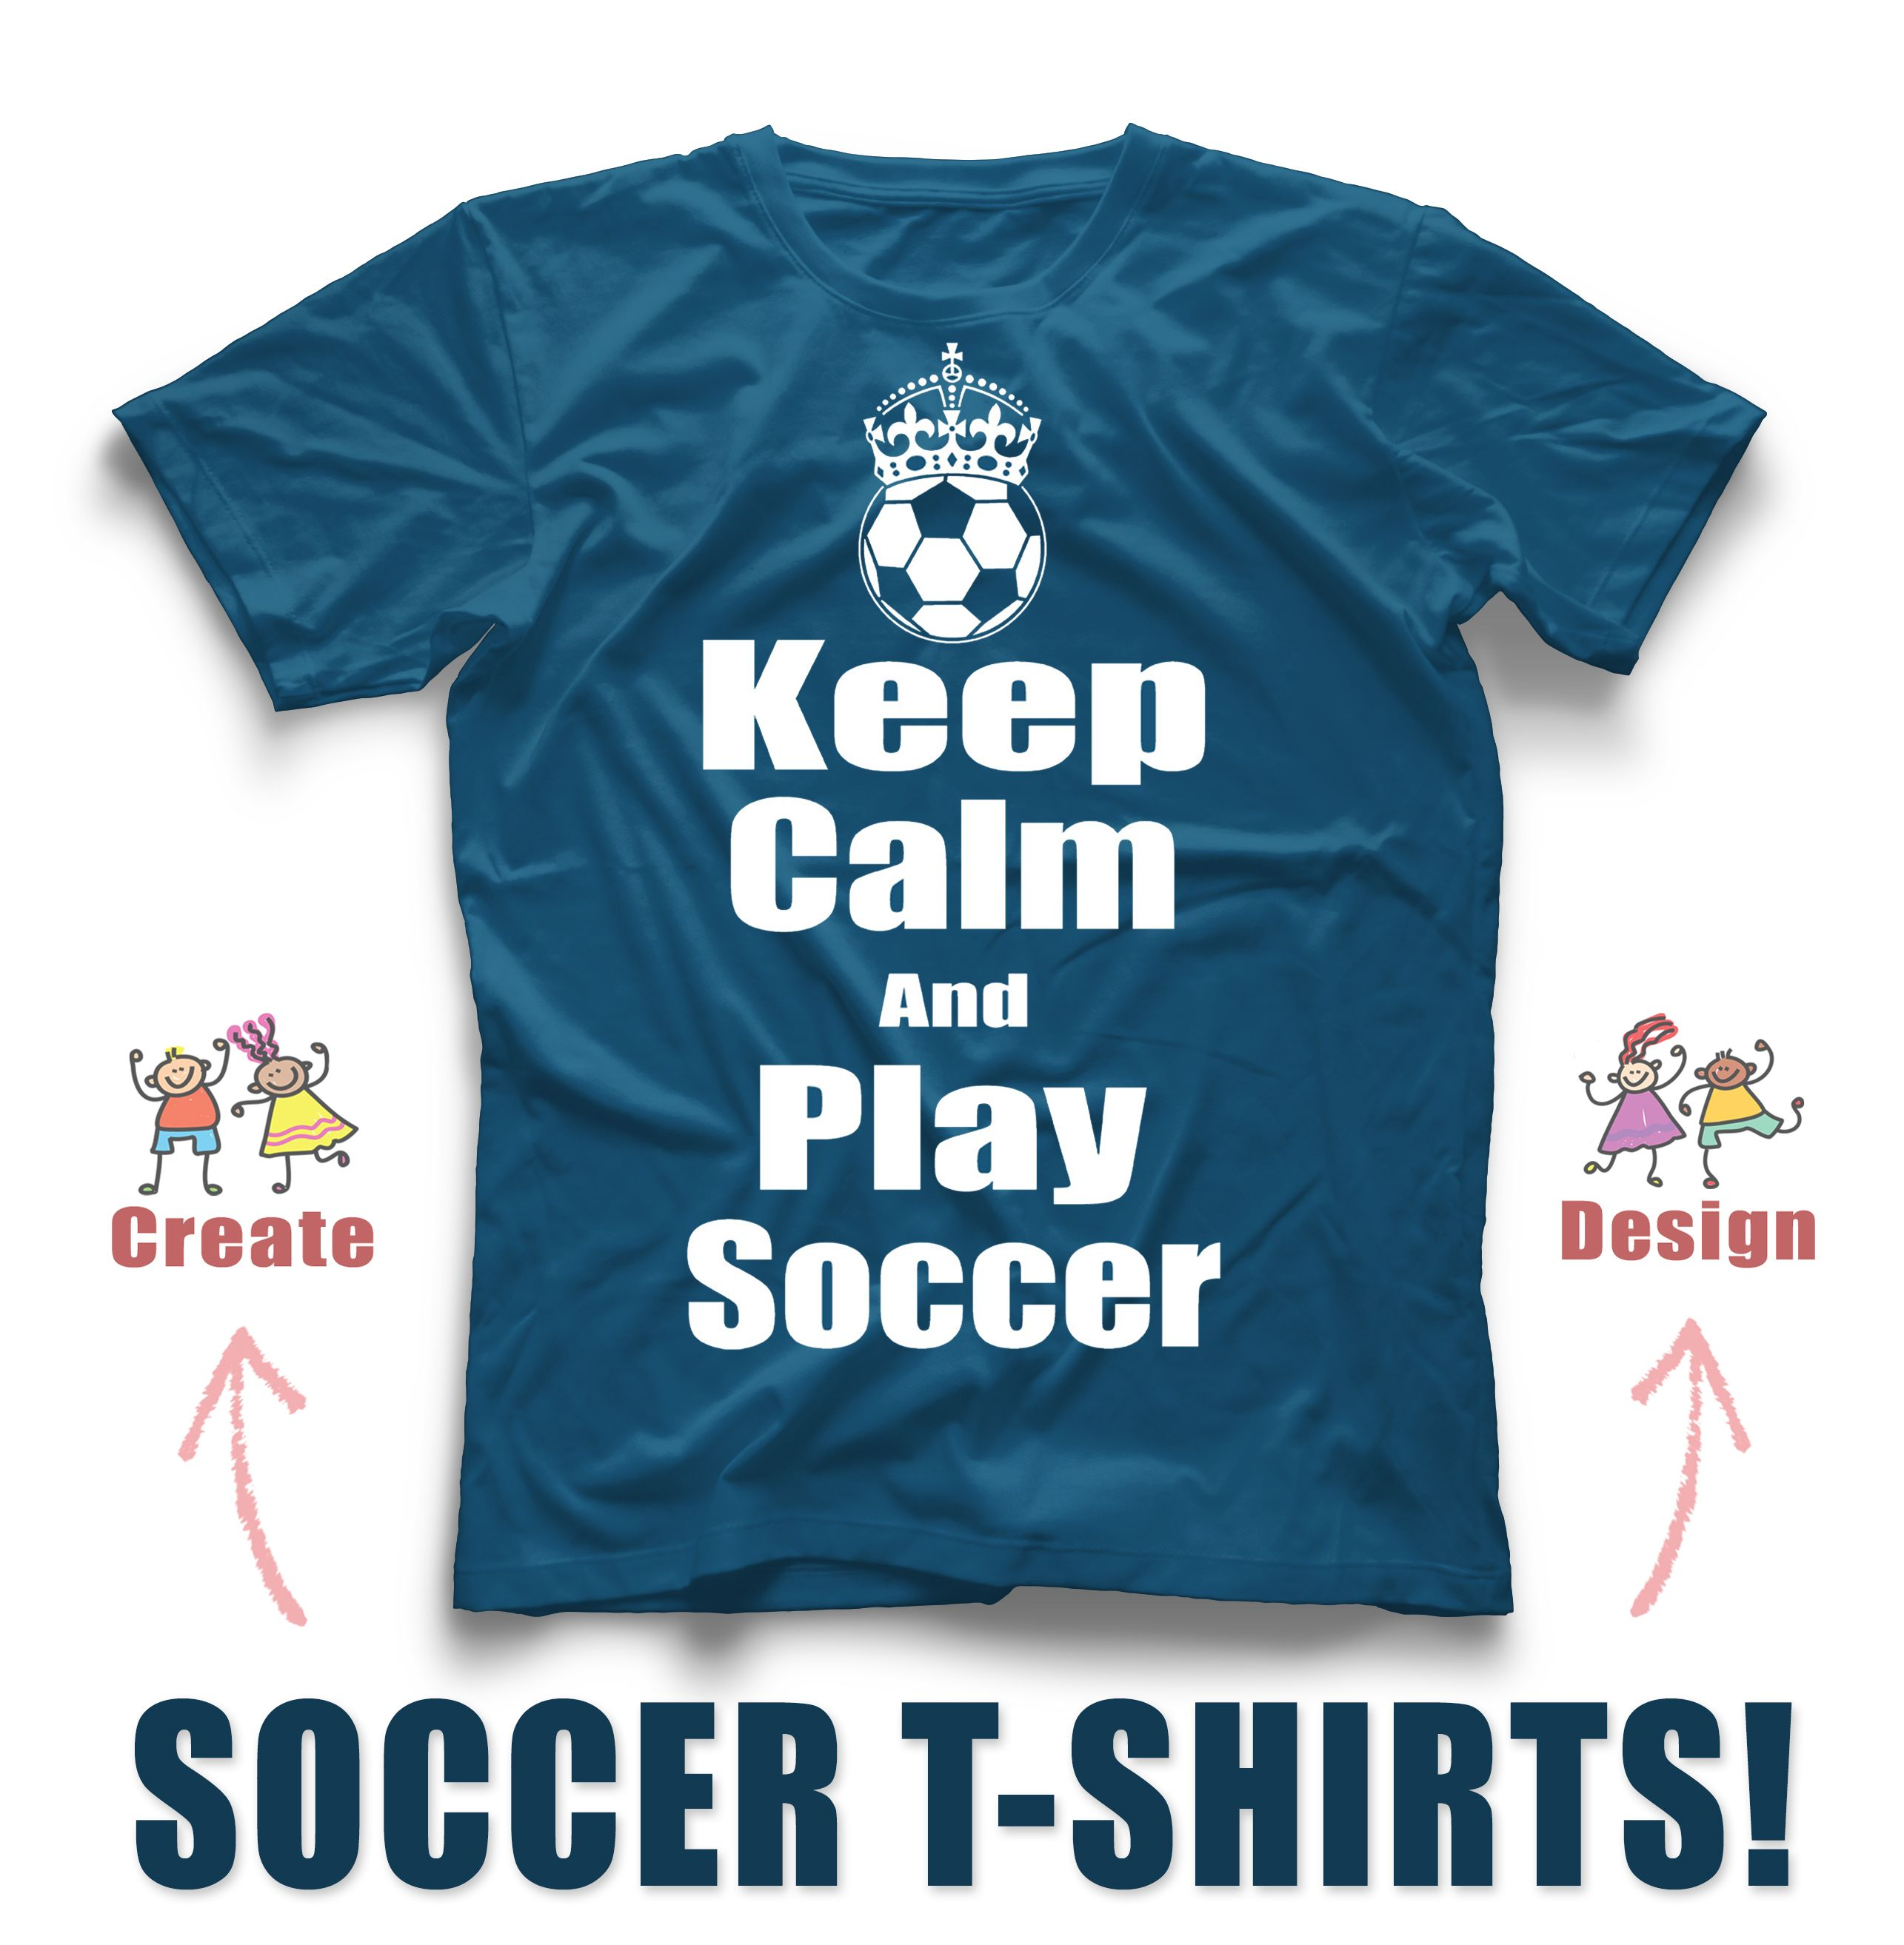 83e5998a5 Soccer custom t-shirt design idea s! Keep calm and Play Soccer! Create your  team s soccer shirt today! www.rushordertees.com  soccershirts